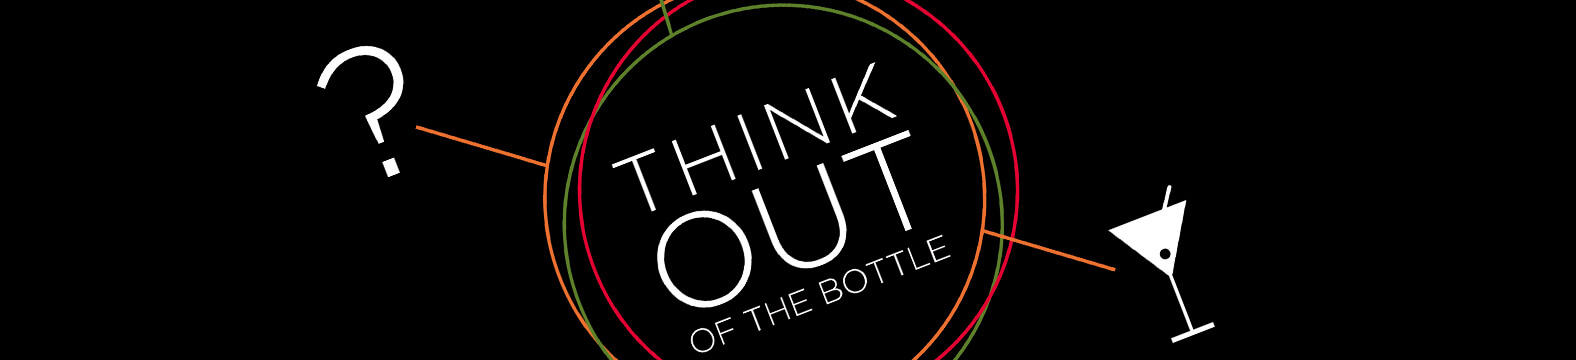 Ptop_Offley Think out of the bottle